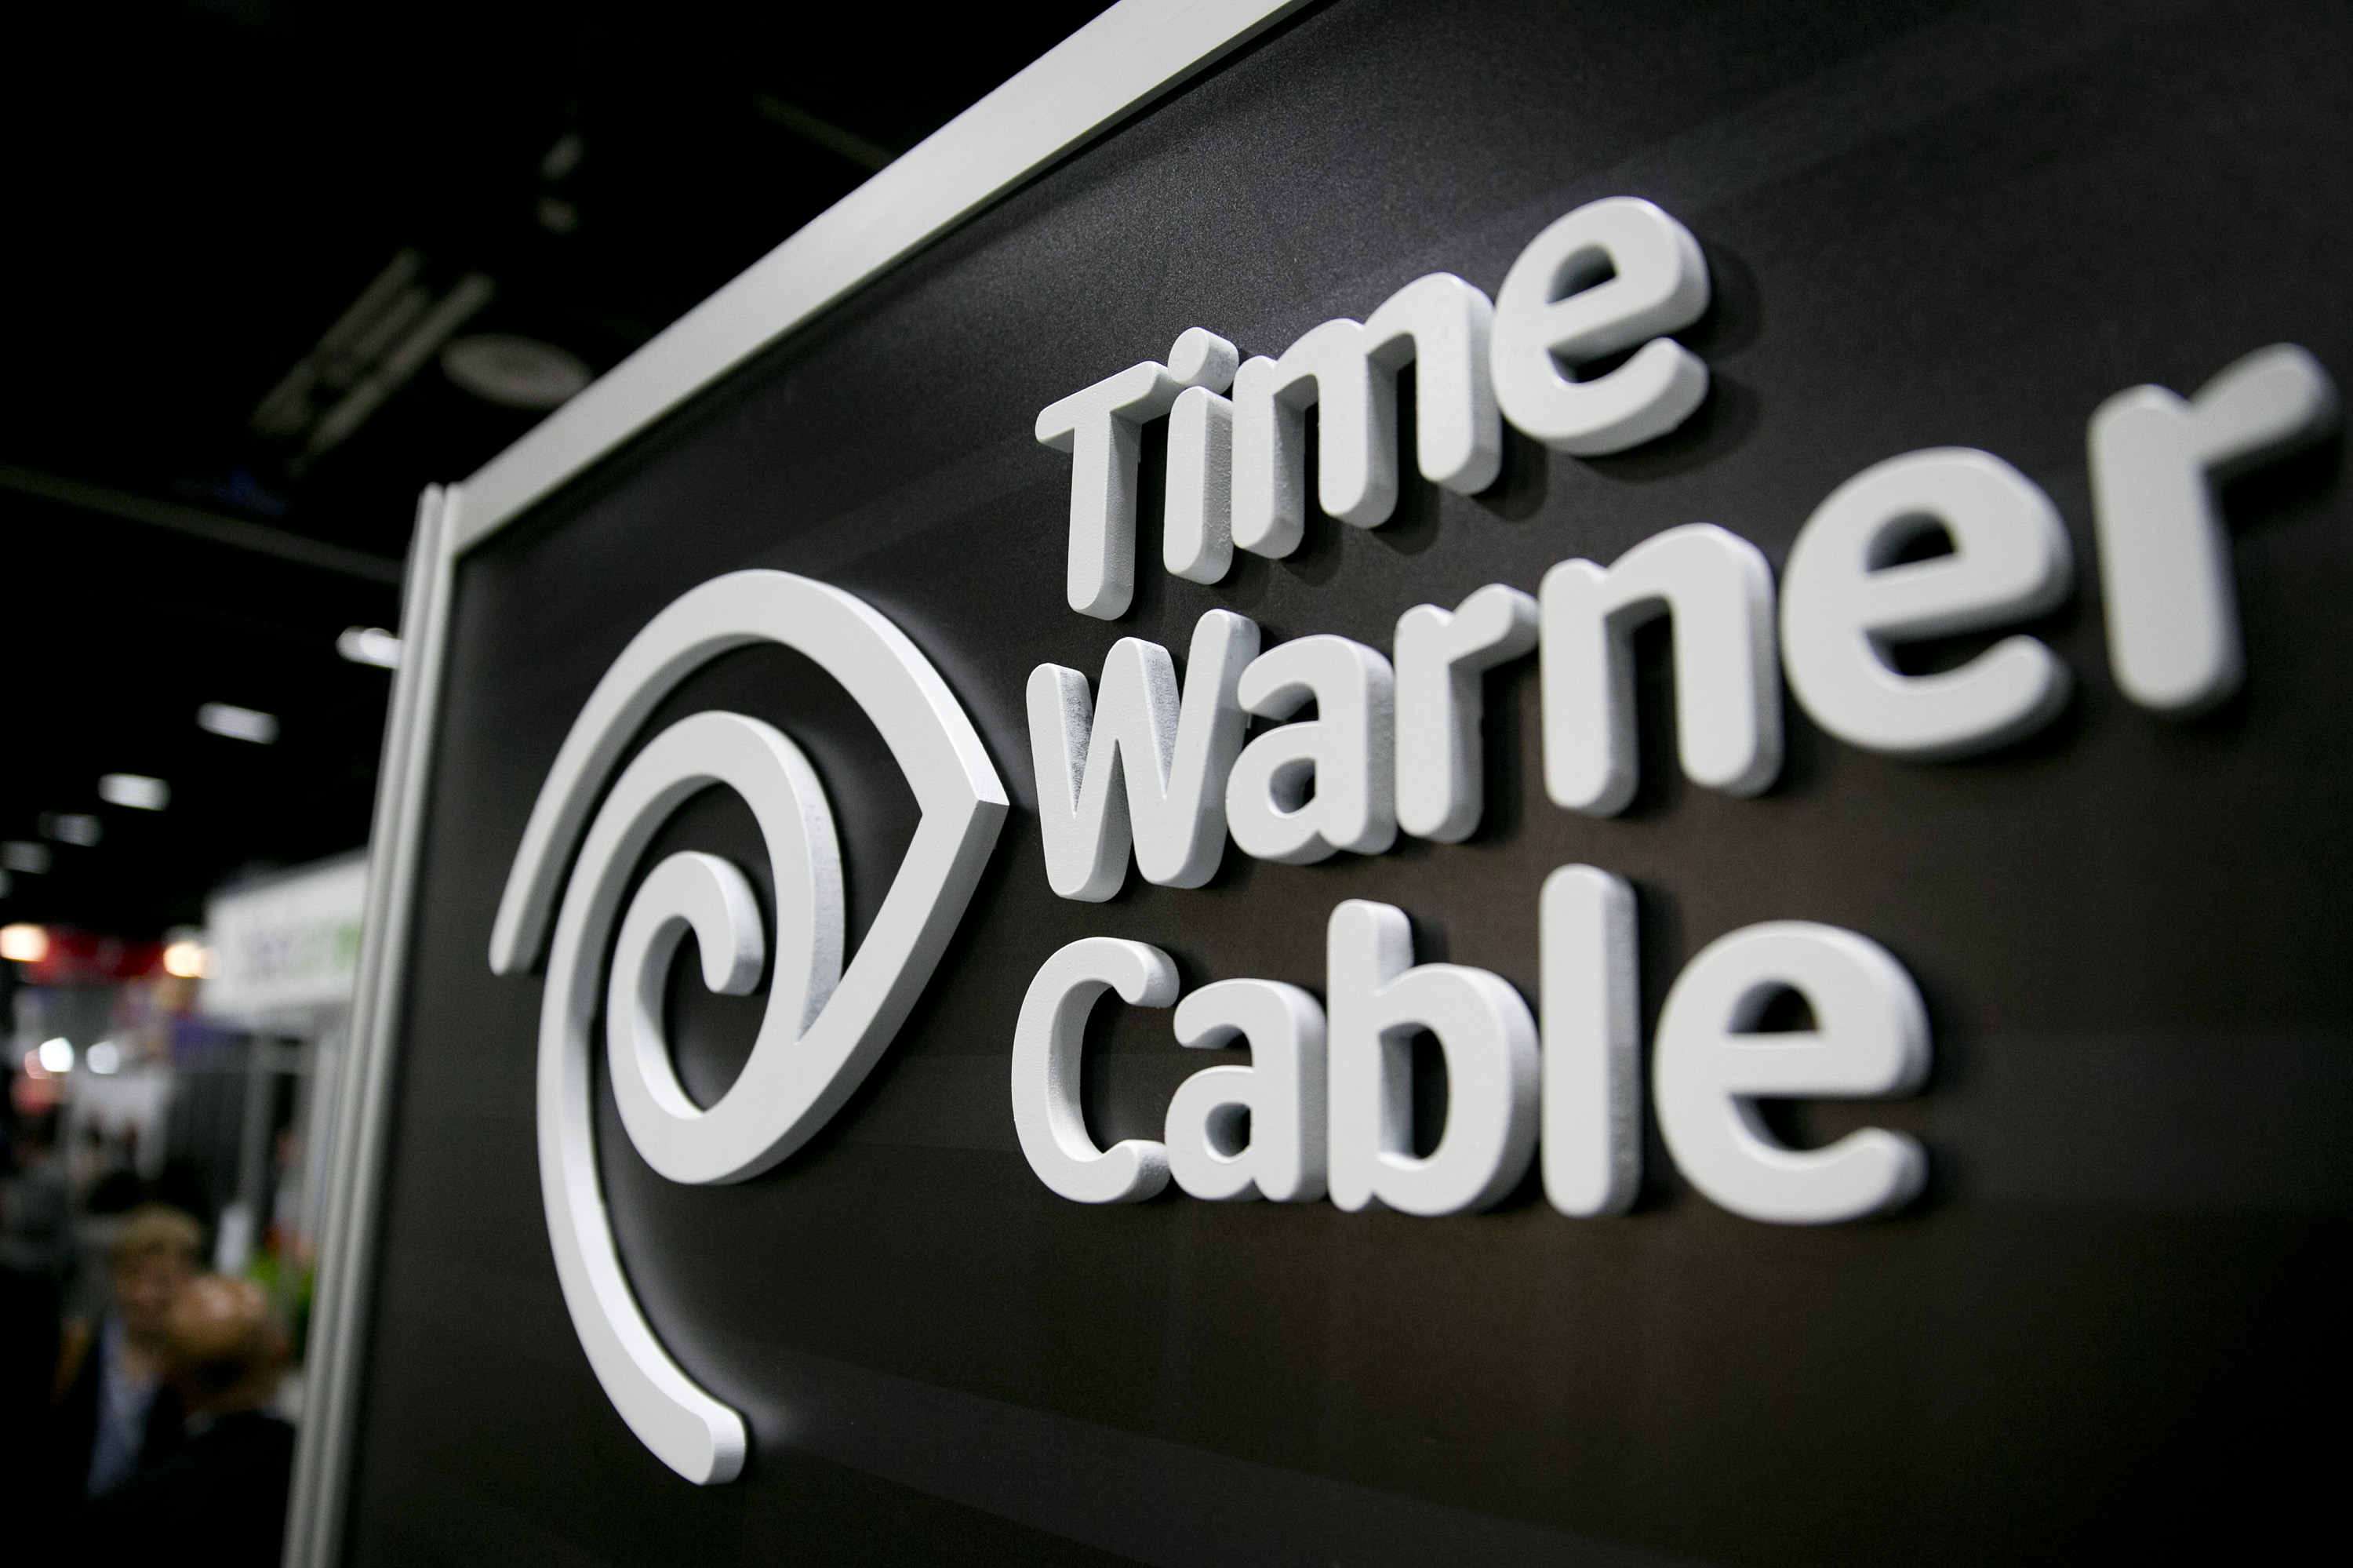 The Time Warner Cable Inc. logo is seen on the exhibit floor during the National Cable and Telecommunications Association (NCTA) Cable Show in Washington, D.C., U.S., on Tuesday, June 11, 2013.